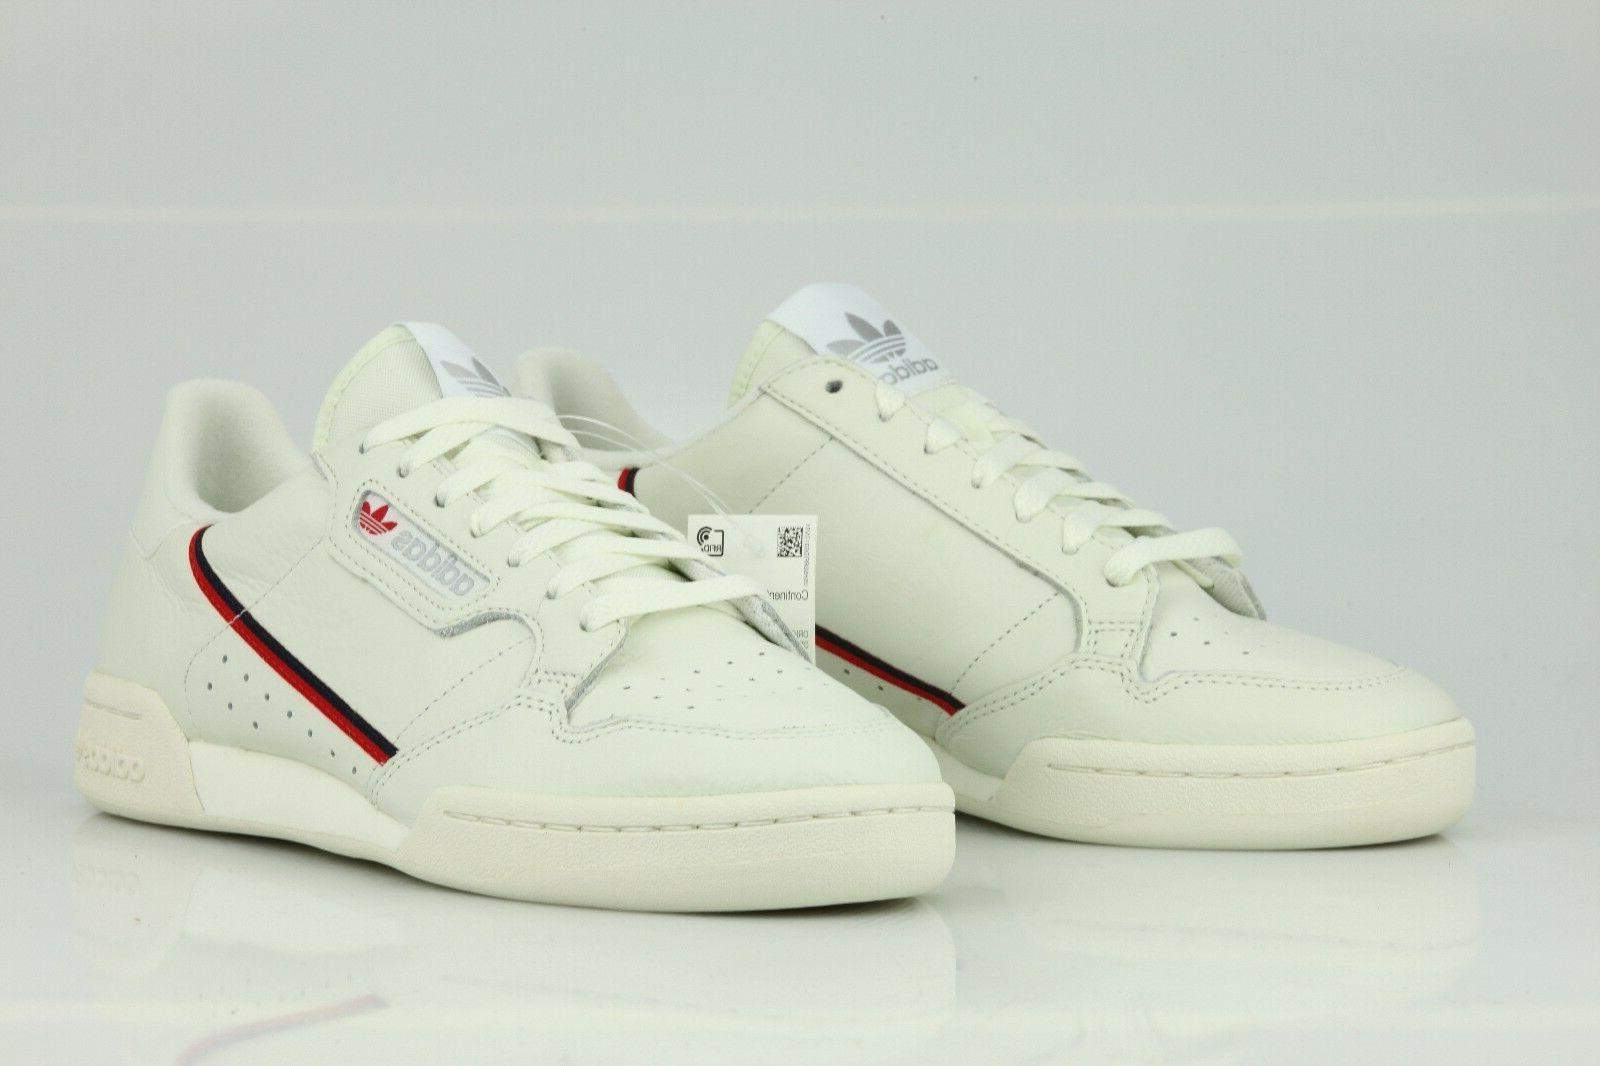 Adidas Rascal White Sneakers Shoes